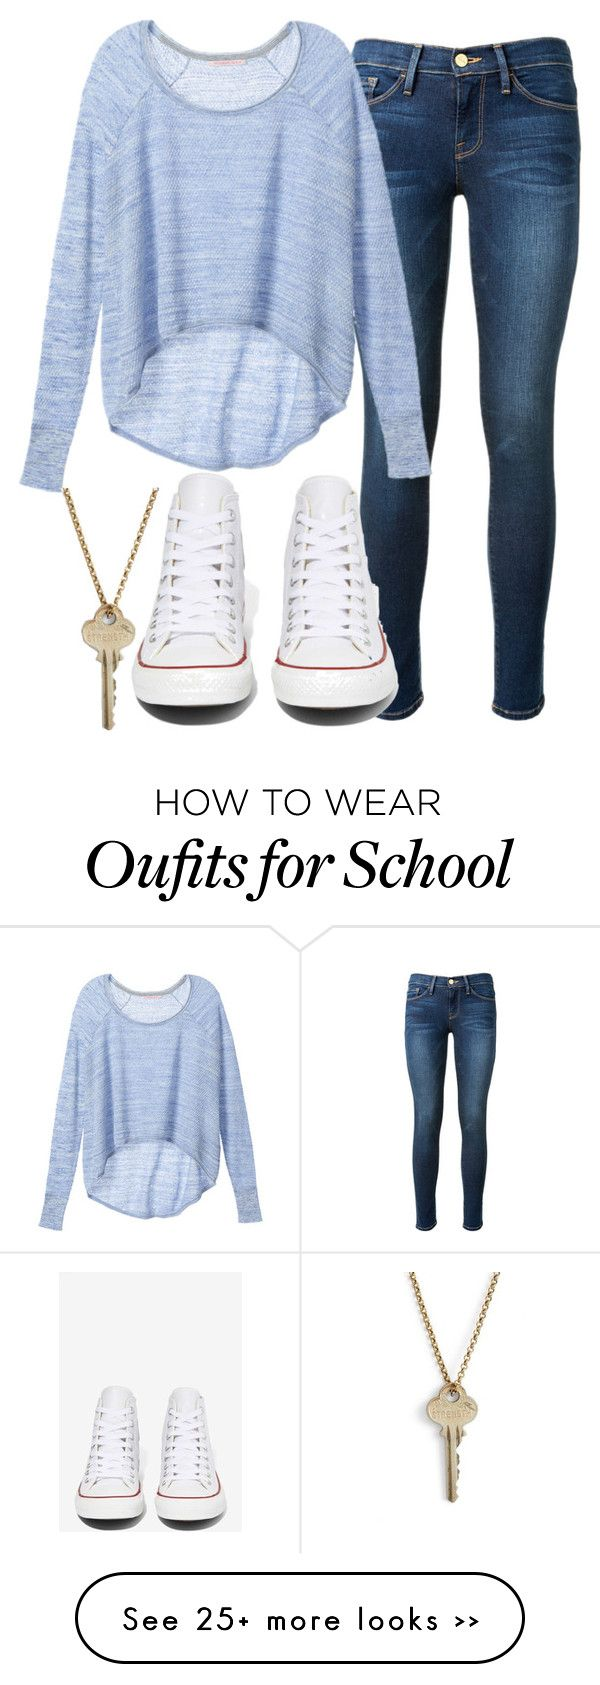 """school"" by heatherleefred on Polyvore"